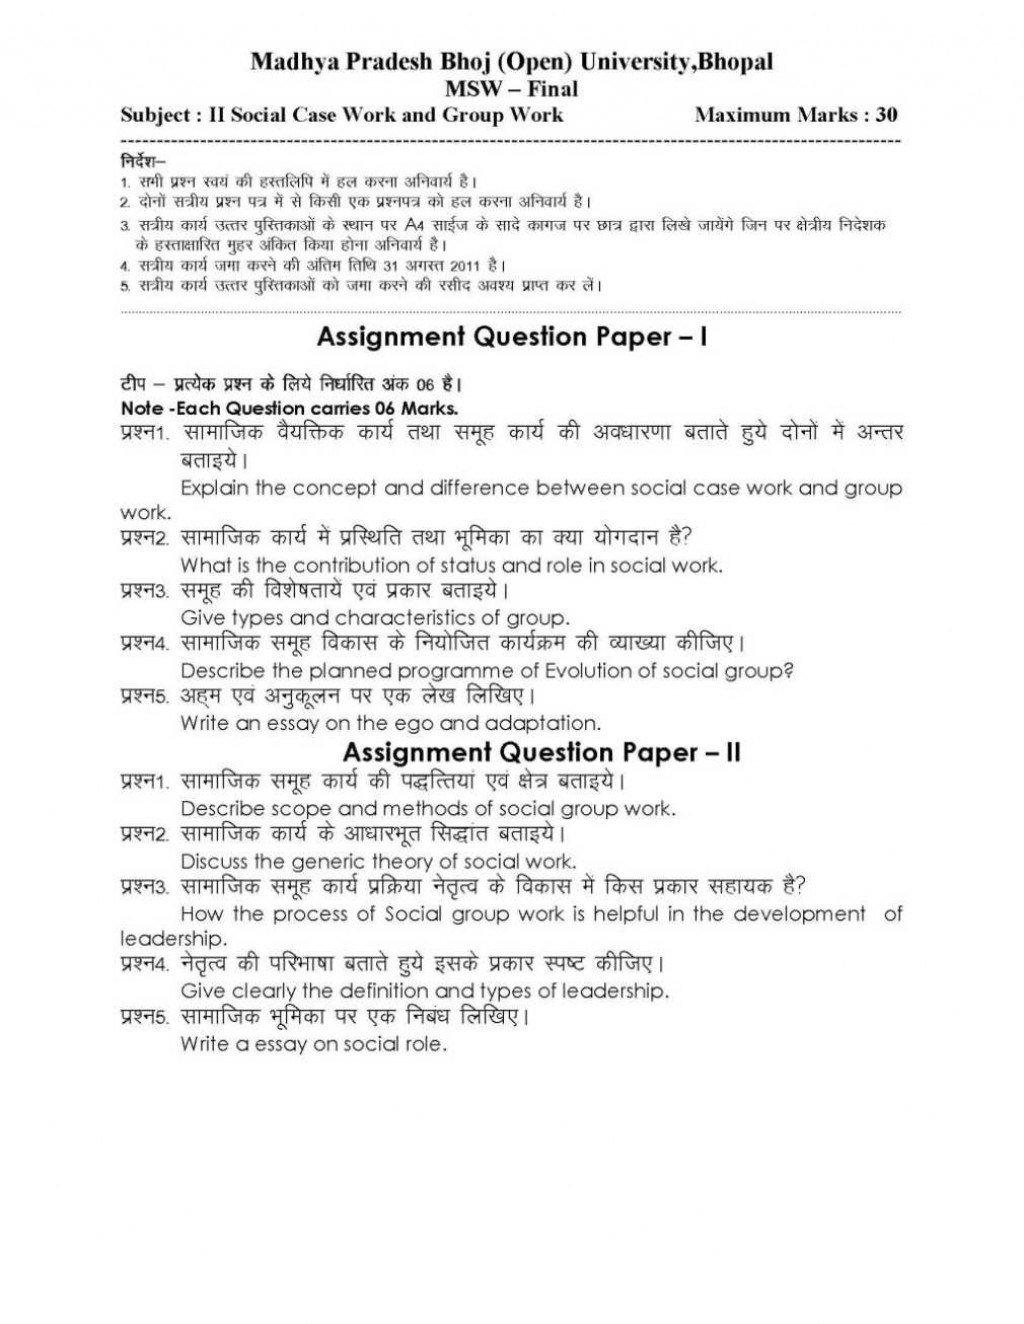 012 Bhoj University Bhopal Msw Definition Essays Surprising Essay Examples Topics Family Pdf Large